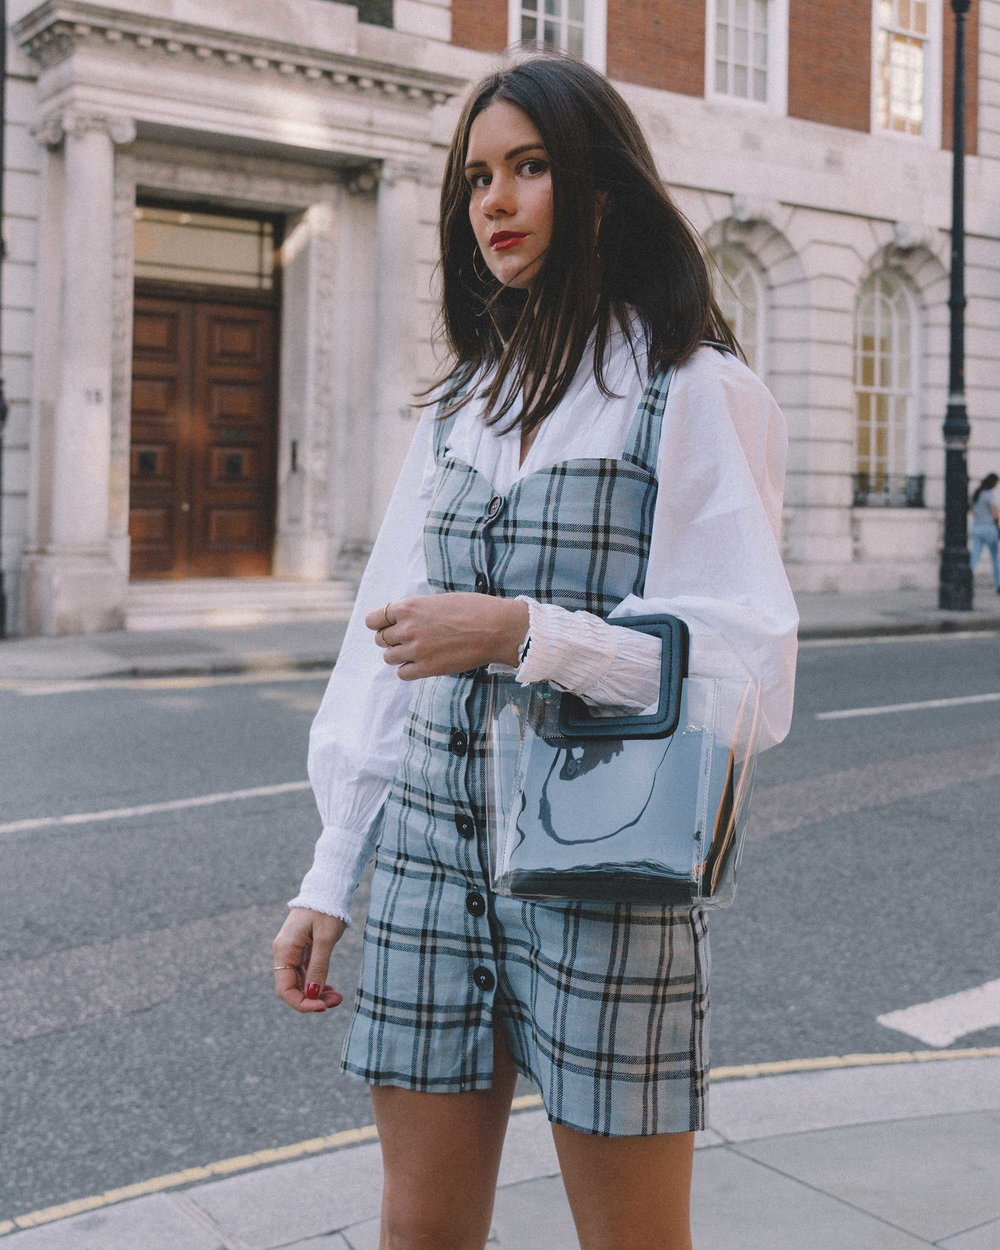 Reformation plaid button front mini dress, Joie Rickelle white blouse Top, London Fashion Week Outfit, Fall Plaid Dress, Fall Plaid Outfit12.jpg